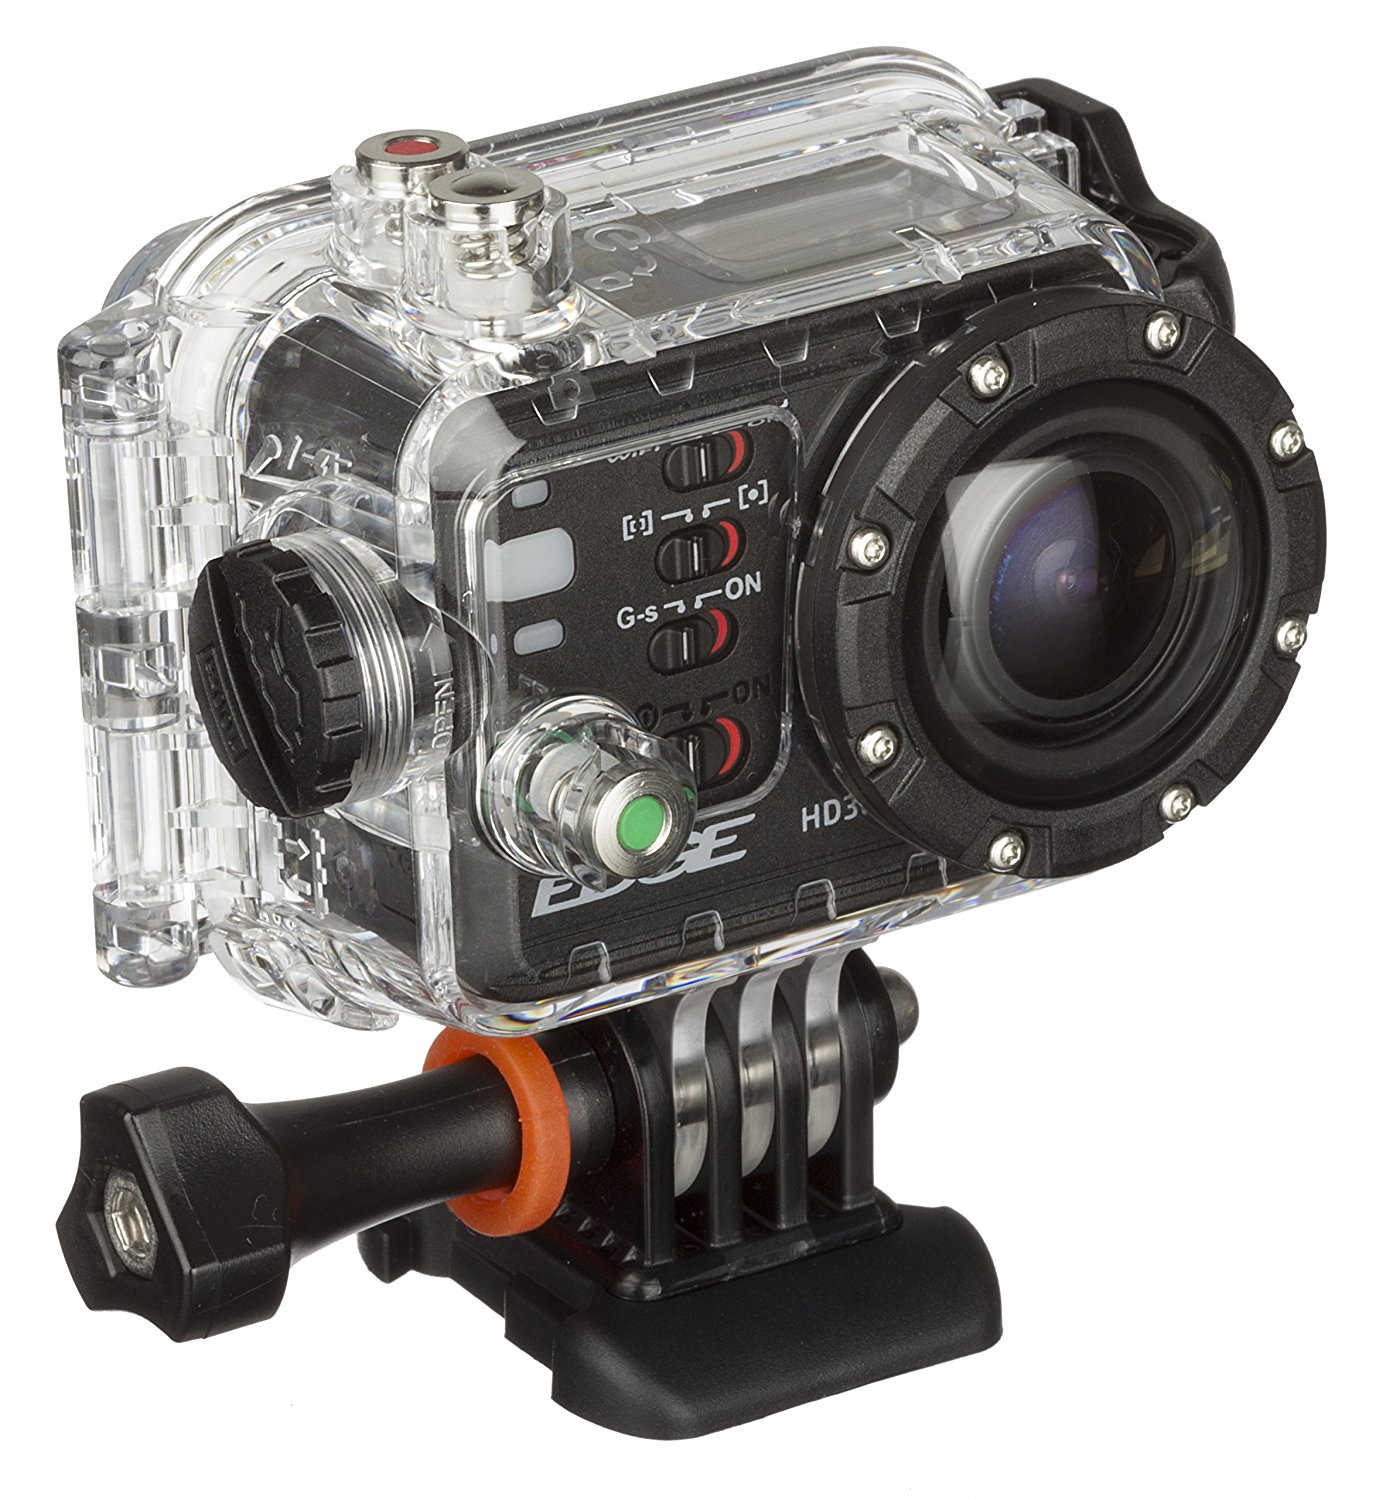 Kitvision ActionCam amazon